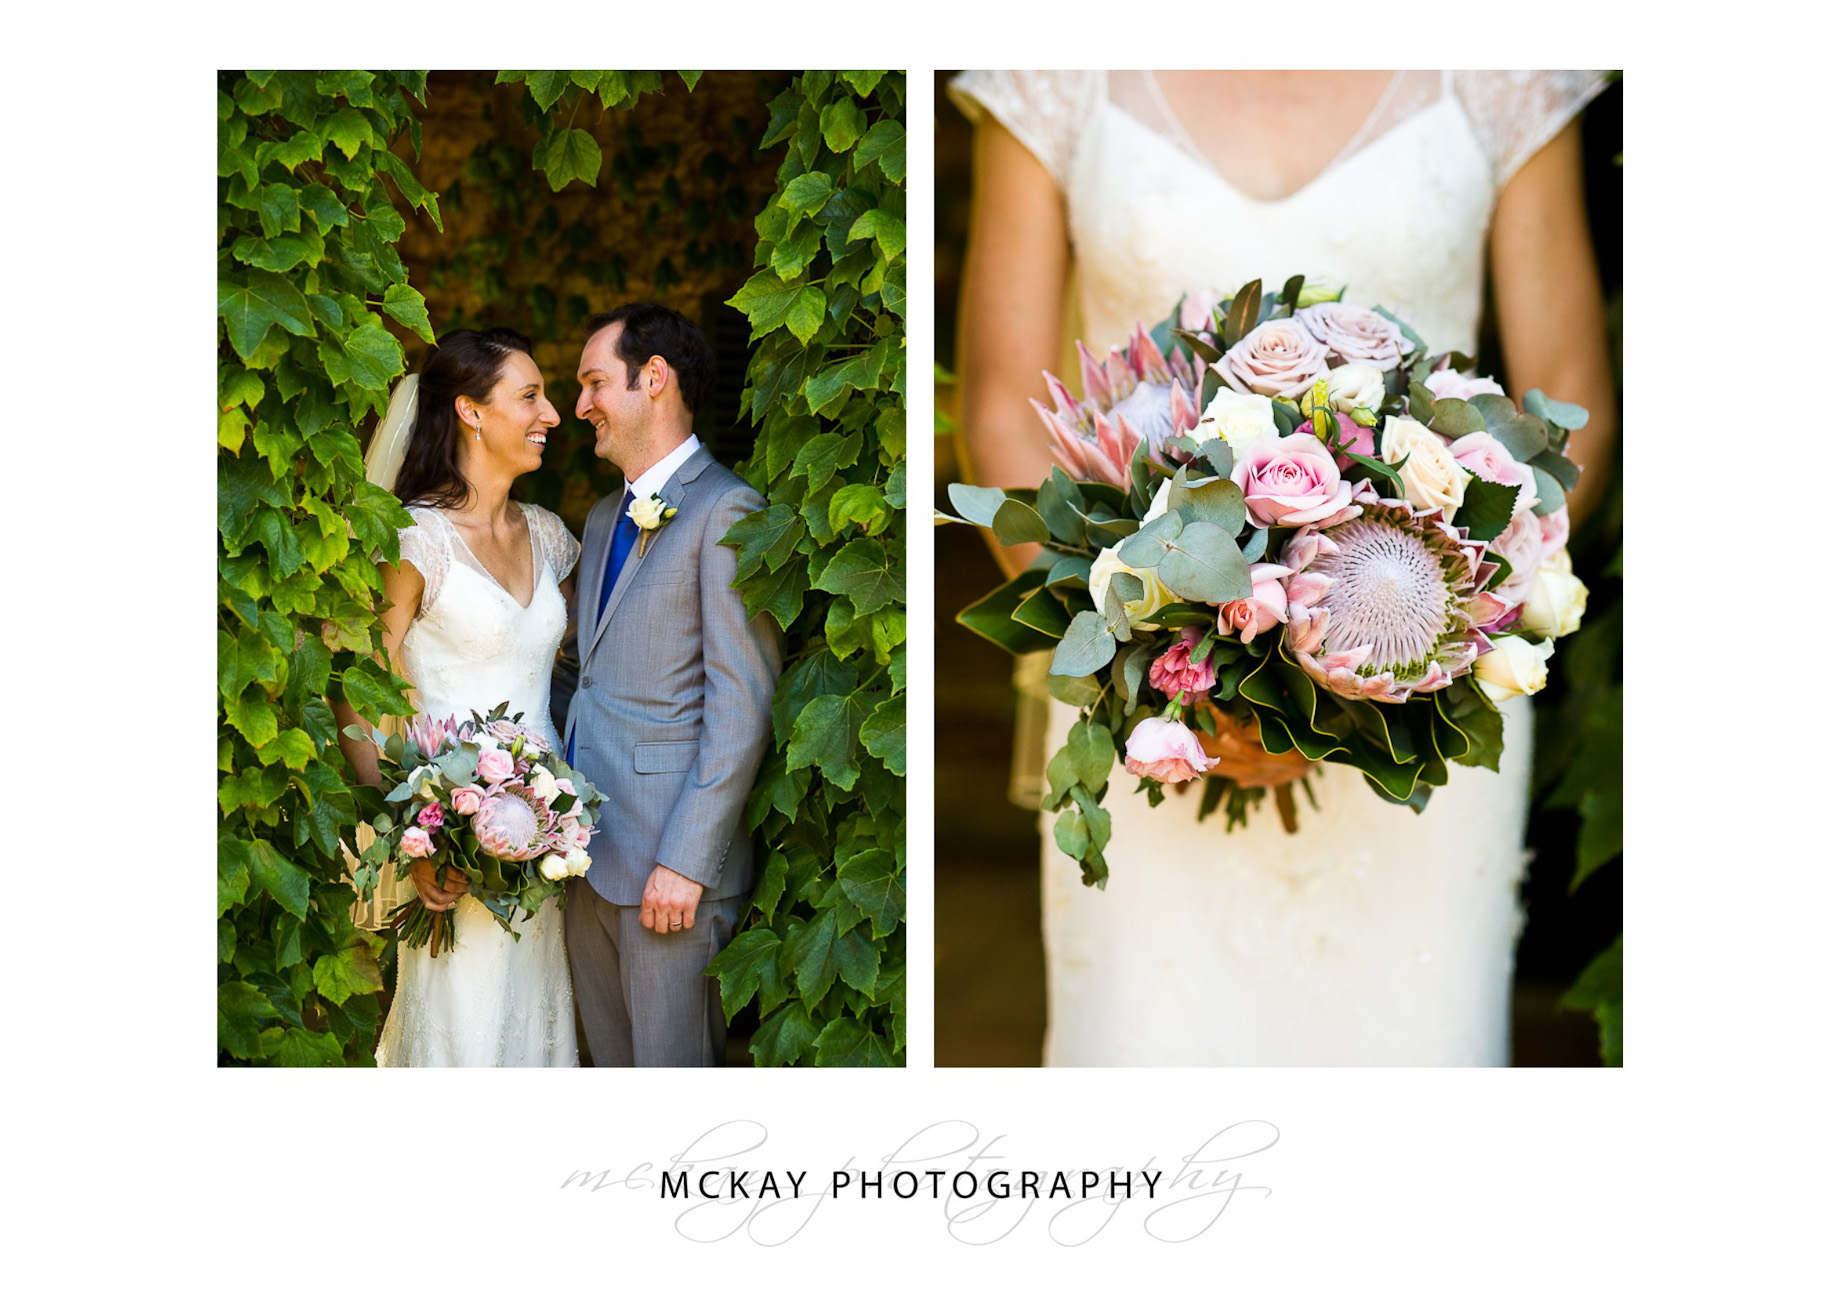 Vines and wedding bouquet